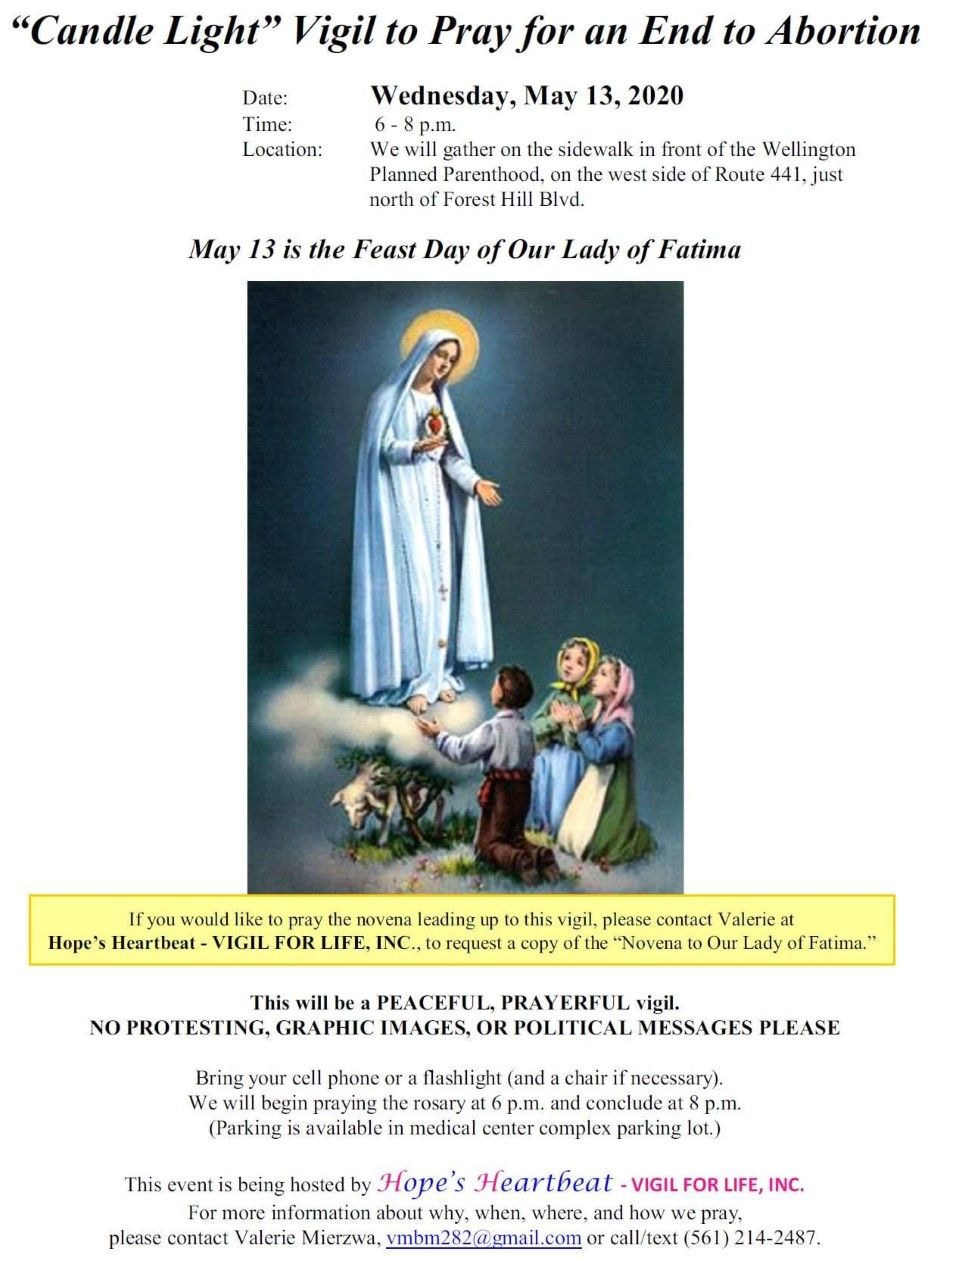 Our Lady of Fatima Candlelight Vigil - Prayer to End Abortion